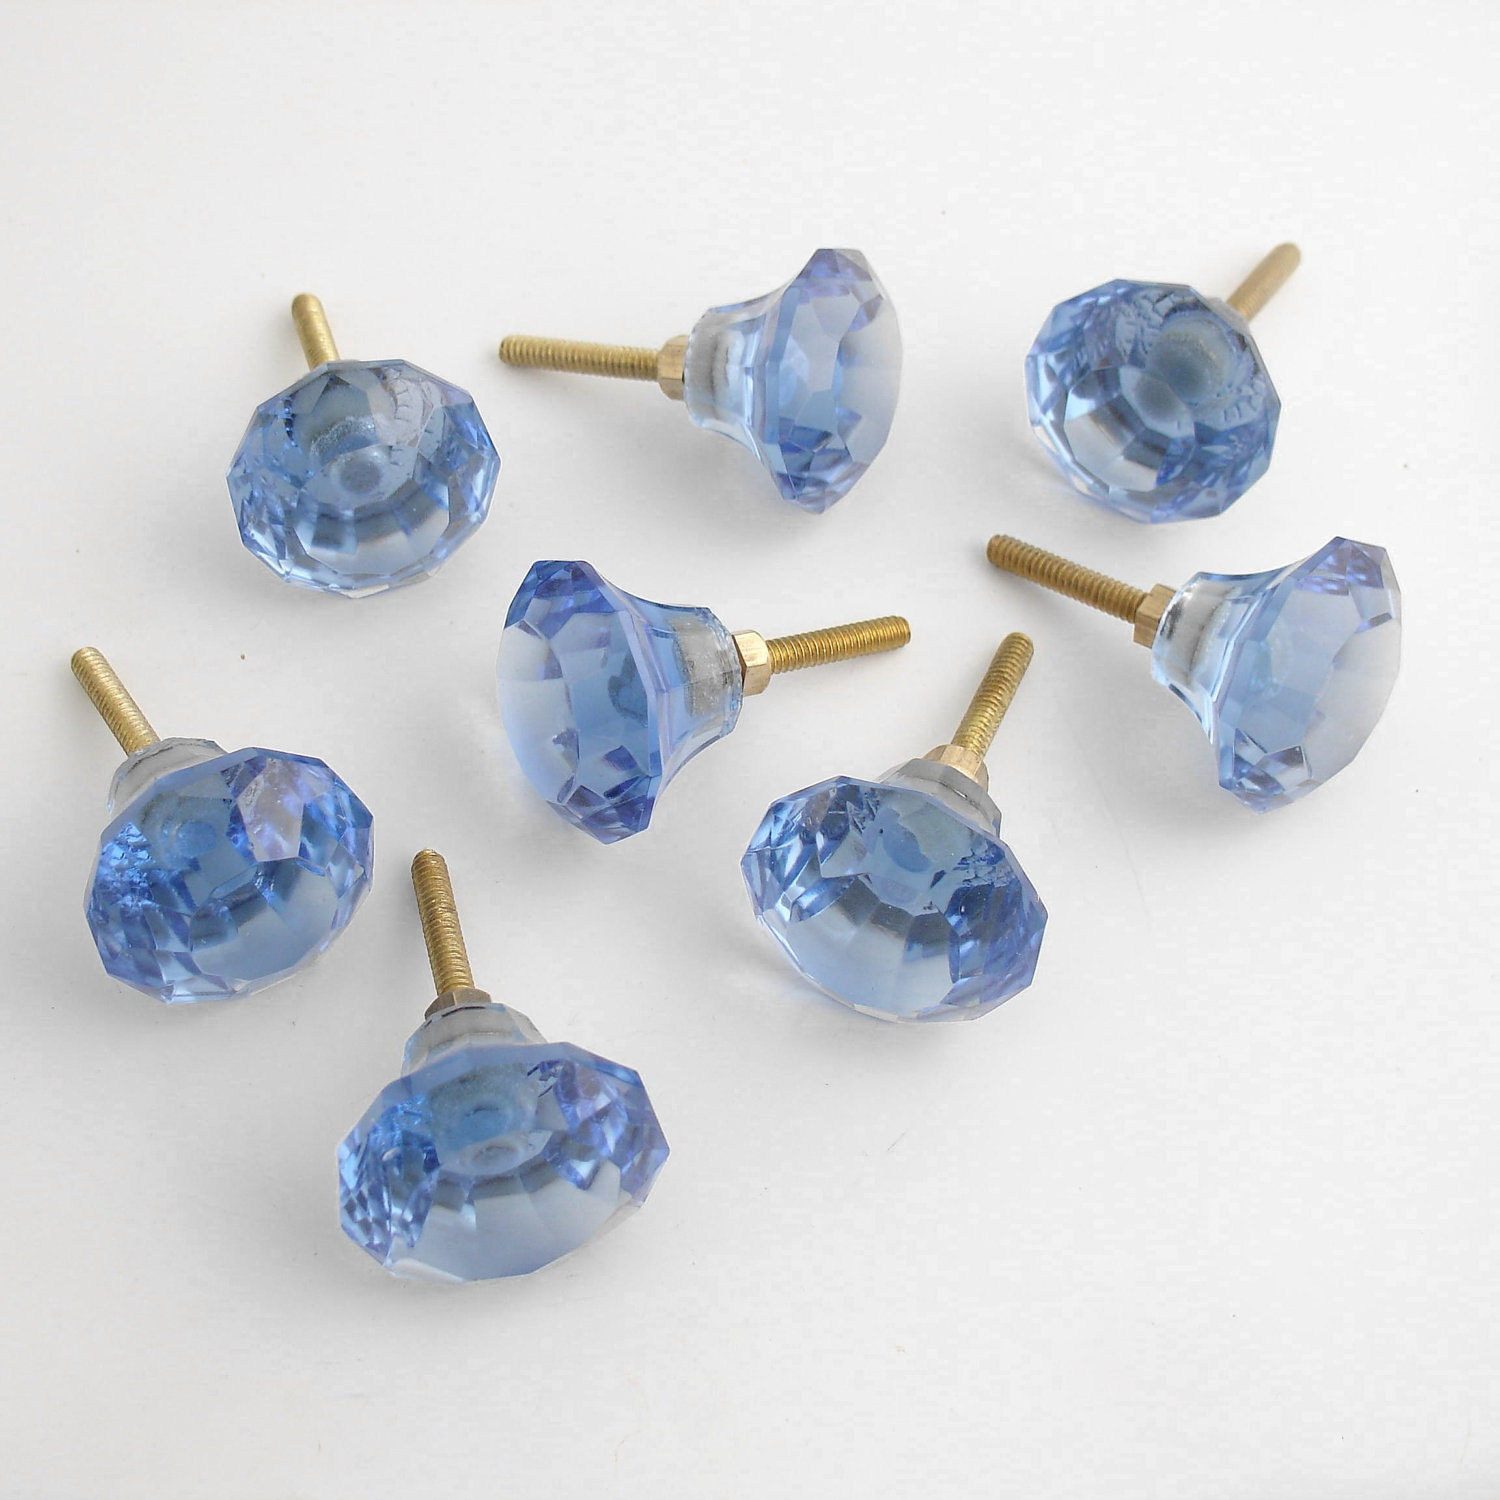 Set 8 blue glass drawer pulls knobs handles pull by efinegifts Glass furniture pulls